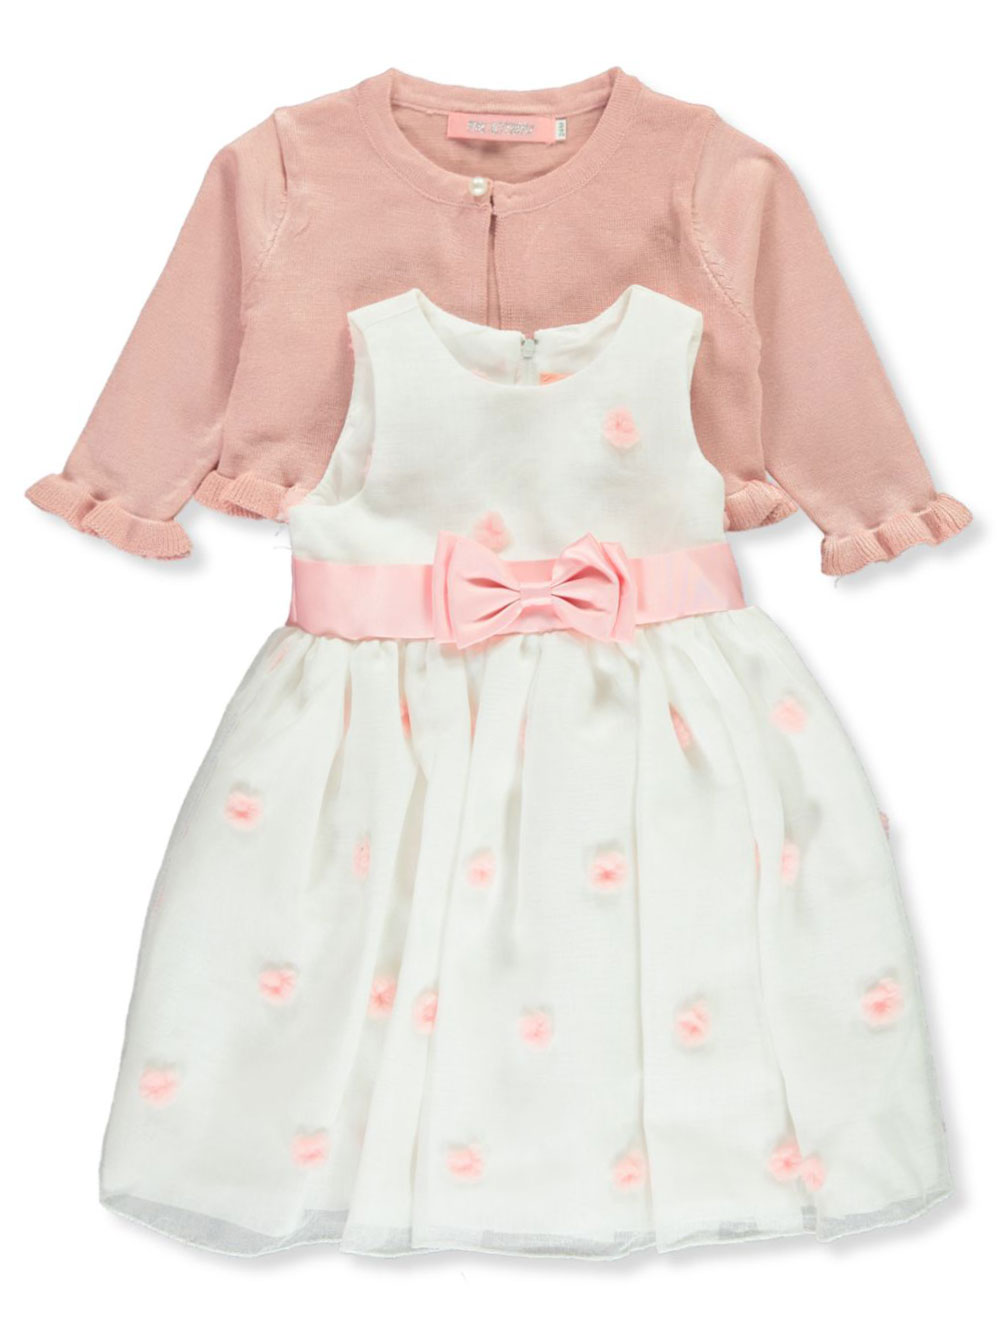 Girls Pink Newborn Dresses